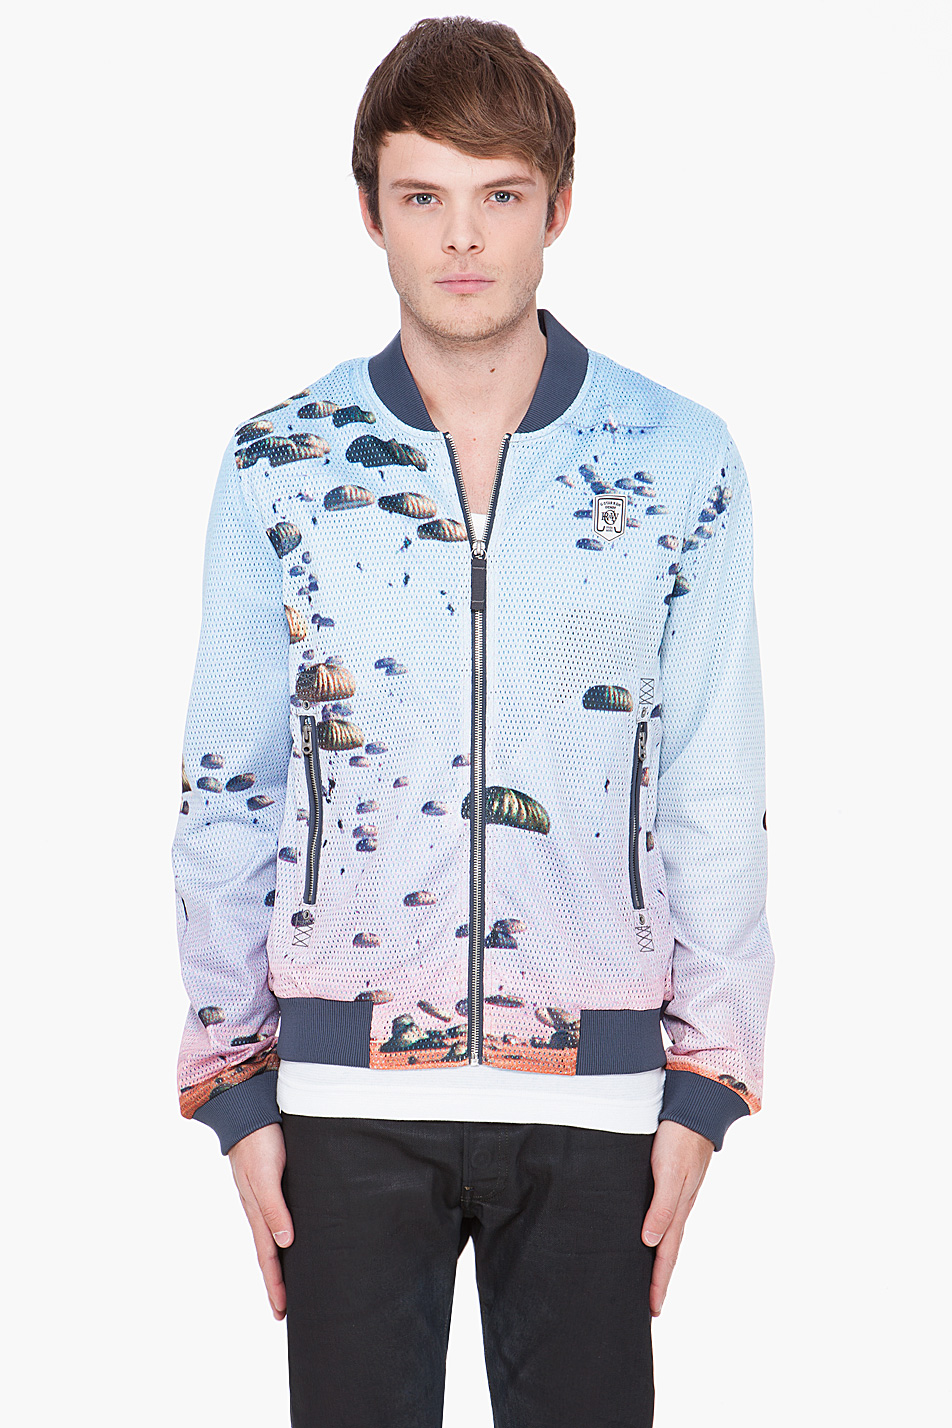 lyst g star raw halo bomber jacket in blue for men. Black Bedroom Furniture Sets. Home Design Ideas